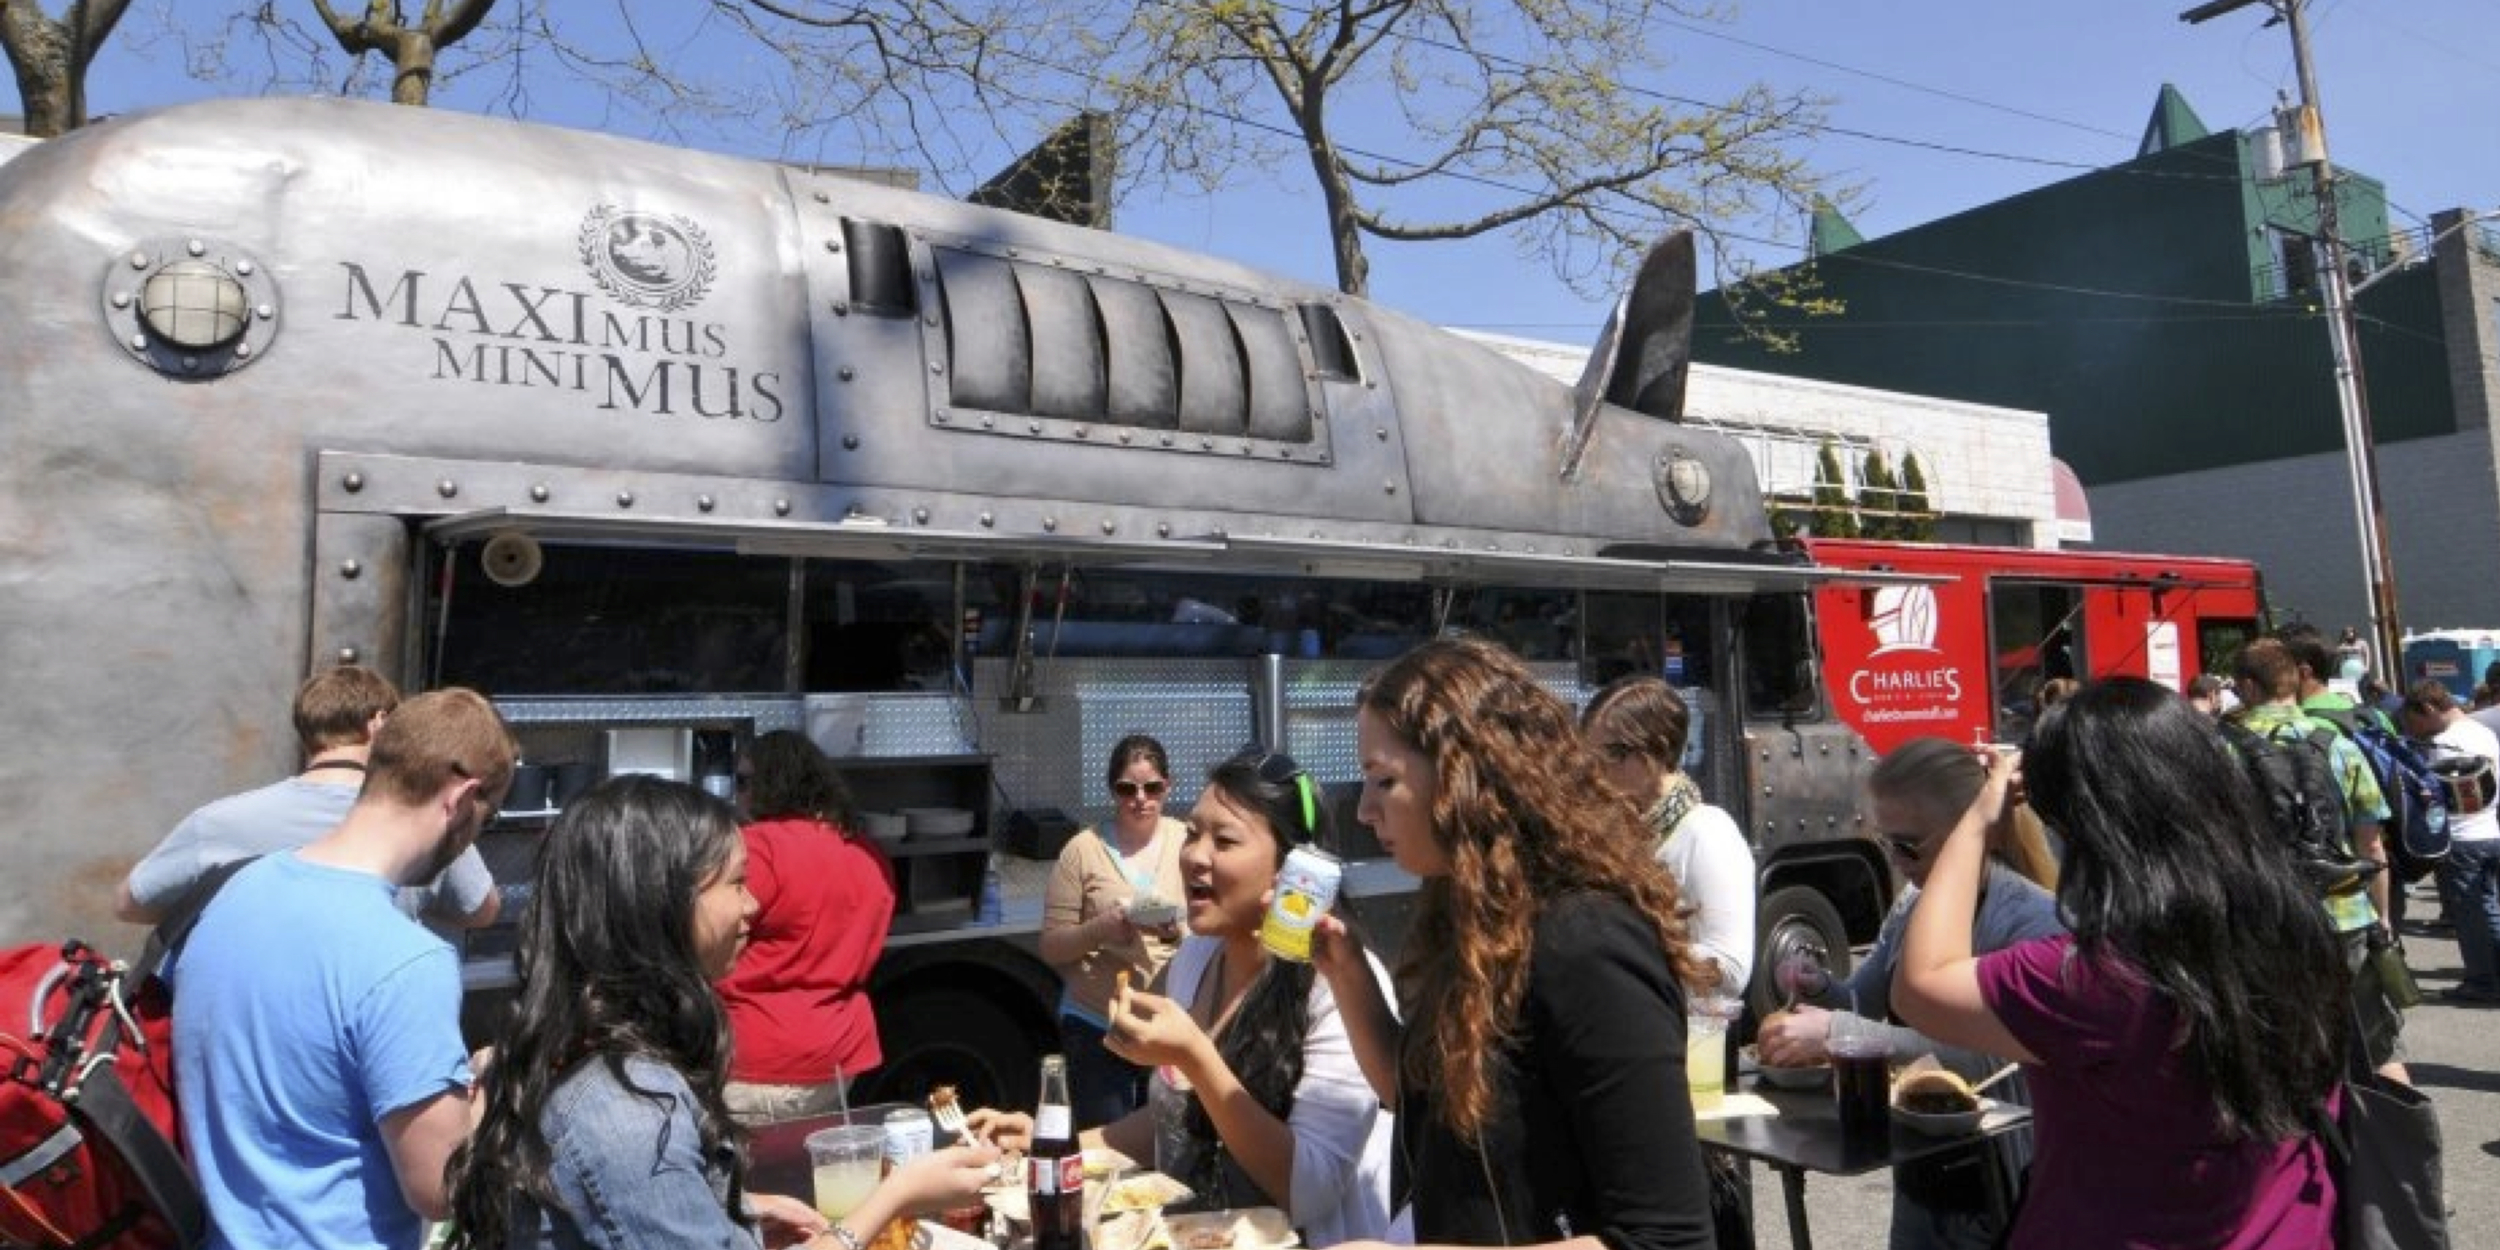 FAMOUS FOR OUR STREET FOOD AND ROTATING SELECTION OF VABULOUS FOOD TRUCKS